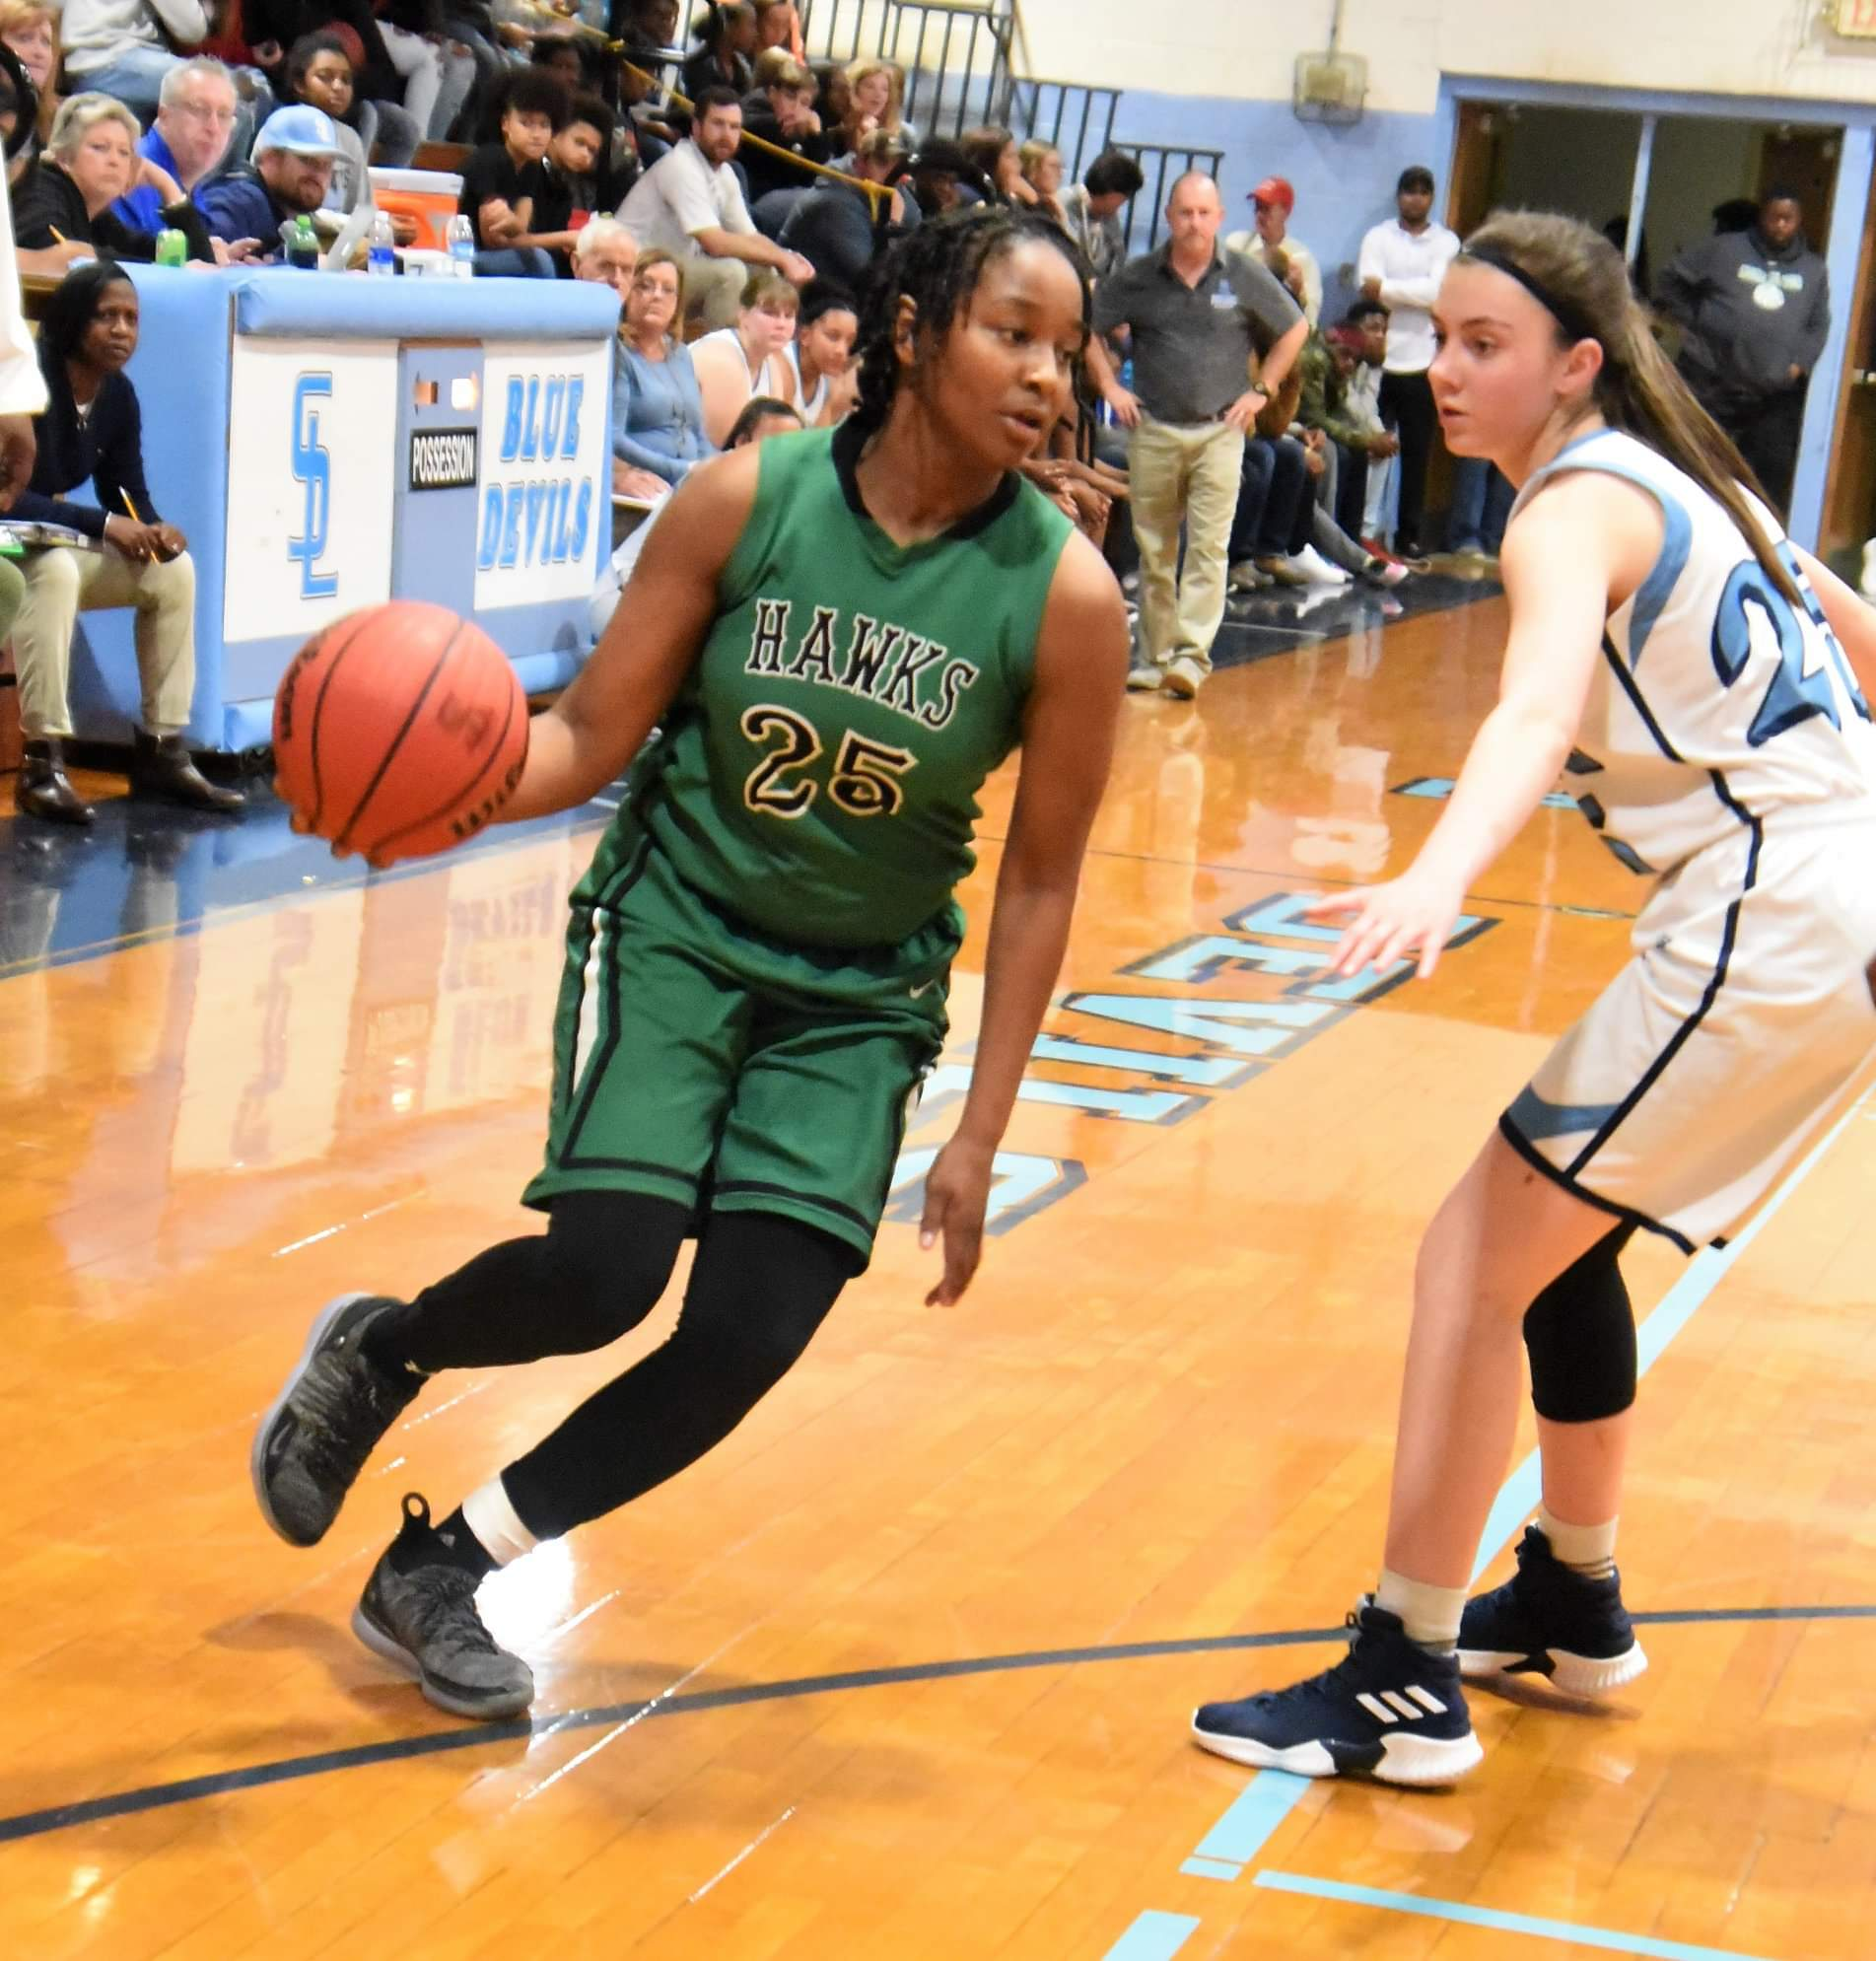 """North Lenoir's Ashanti Lynch drives as South Lenoir's Tiffany Croom defends during Thursday's contest. Photo by William """"Bud"""" Hardy / Neuse News"""